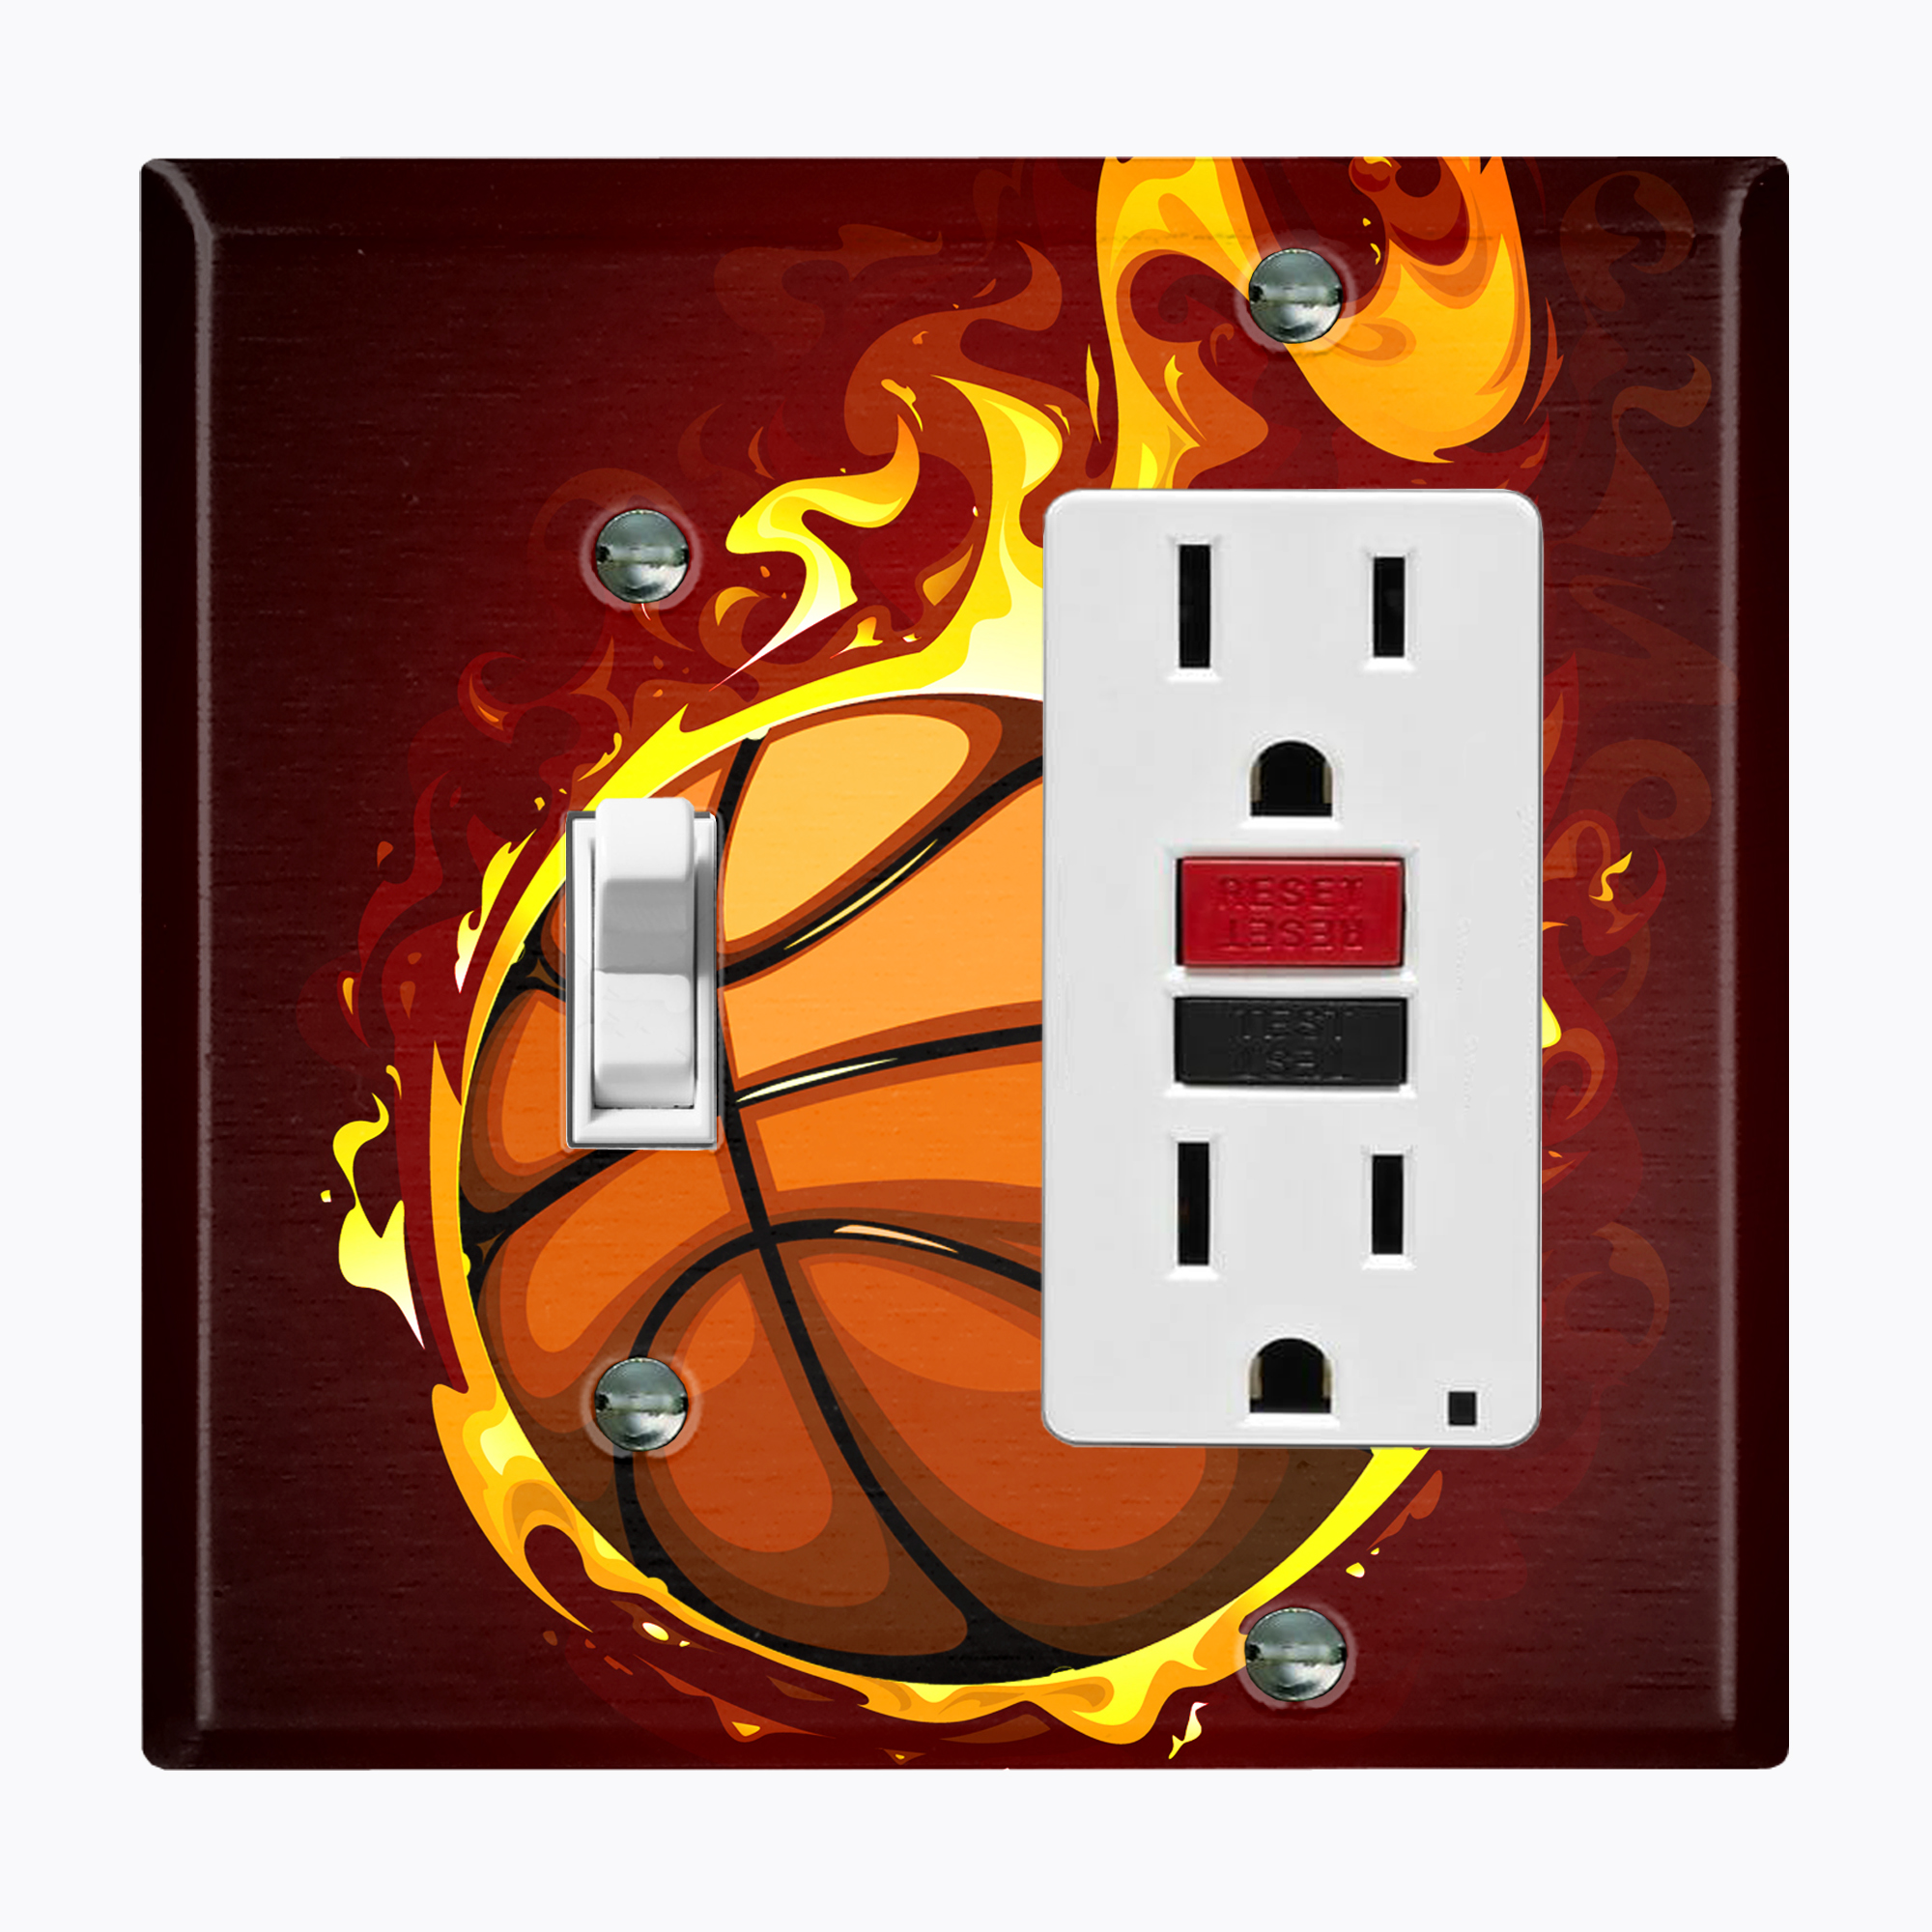 BASKETBALL AND 1 LIGHT SWITCH /& OUTLET COVERS; SPORTY AND COOL!-FREE SHIPPING